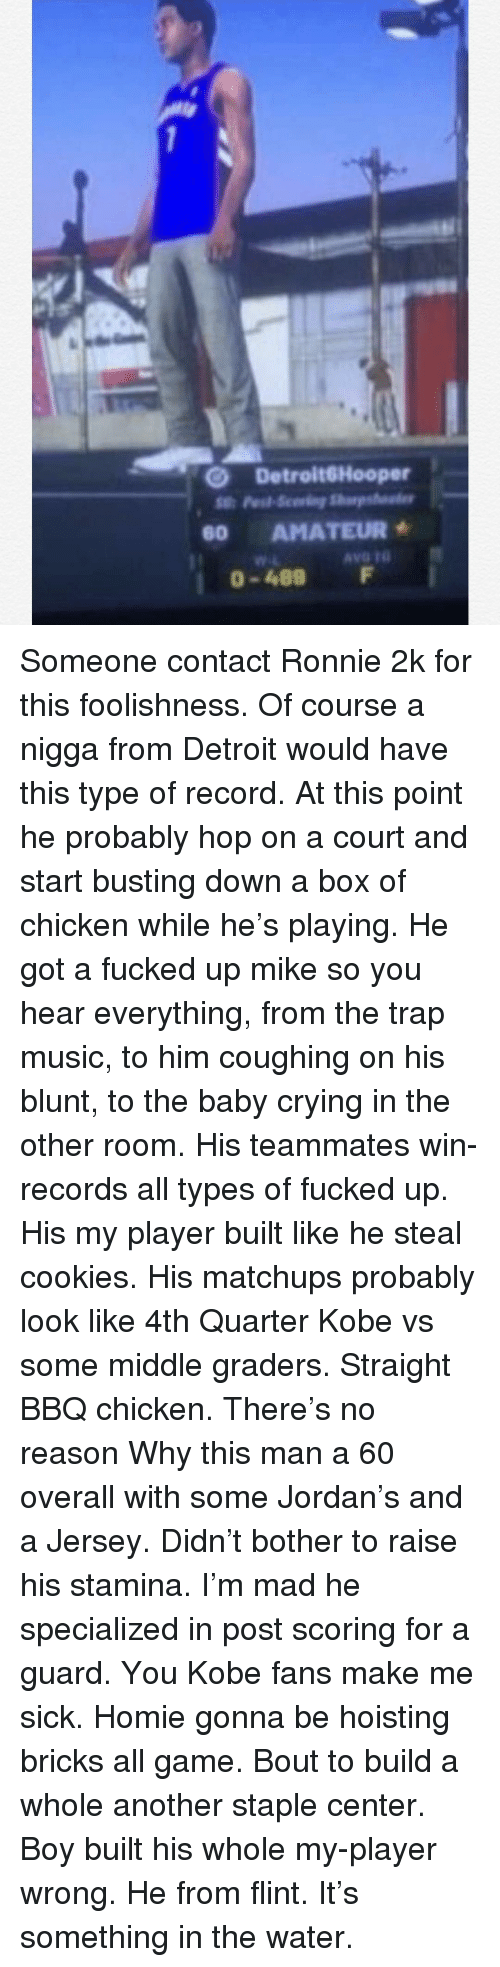 Cookies, Crying, and Detroit: O DetroitGHooper  60 AMATEUR  0-489 F Someone contact Ronnie 2k for this foolishness. Of course a nigga from Detroit would have this type of record. At this point he probably hop on a court and start busting down a box of chicken while he's playing. He got a fucked up mike so you hear everything, from the trap music, to him coughing on his blunt, to the baby crying in the other room. His teammates win-records all types of fucked up. His my player built like he steal cookies. His matchups probably look like 4th Quarter Kobe vs some middle graders. Straight BBQ chicken. There's no reason Why this man a 60 overall with some Jordan's and a Jersey. Didn't bother to raise his stamina. I'm mad he specialized in post scoring for a guard. You Kobe fans make me sick. Homie gonna be hoisting bricks all game. Bout to build a whole another staple center. Boy built his whole my-player wrong. He from flint. It's something in the water.